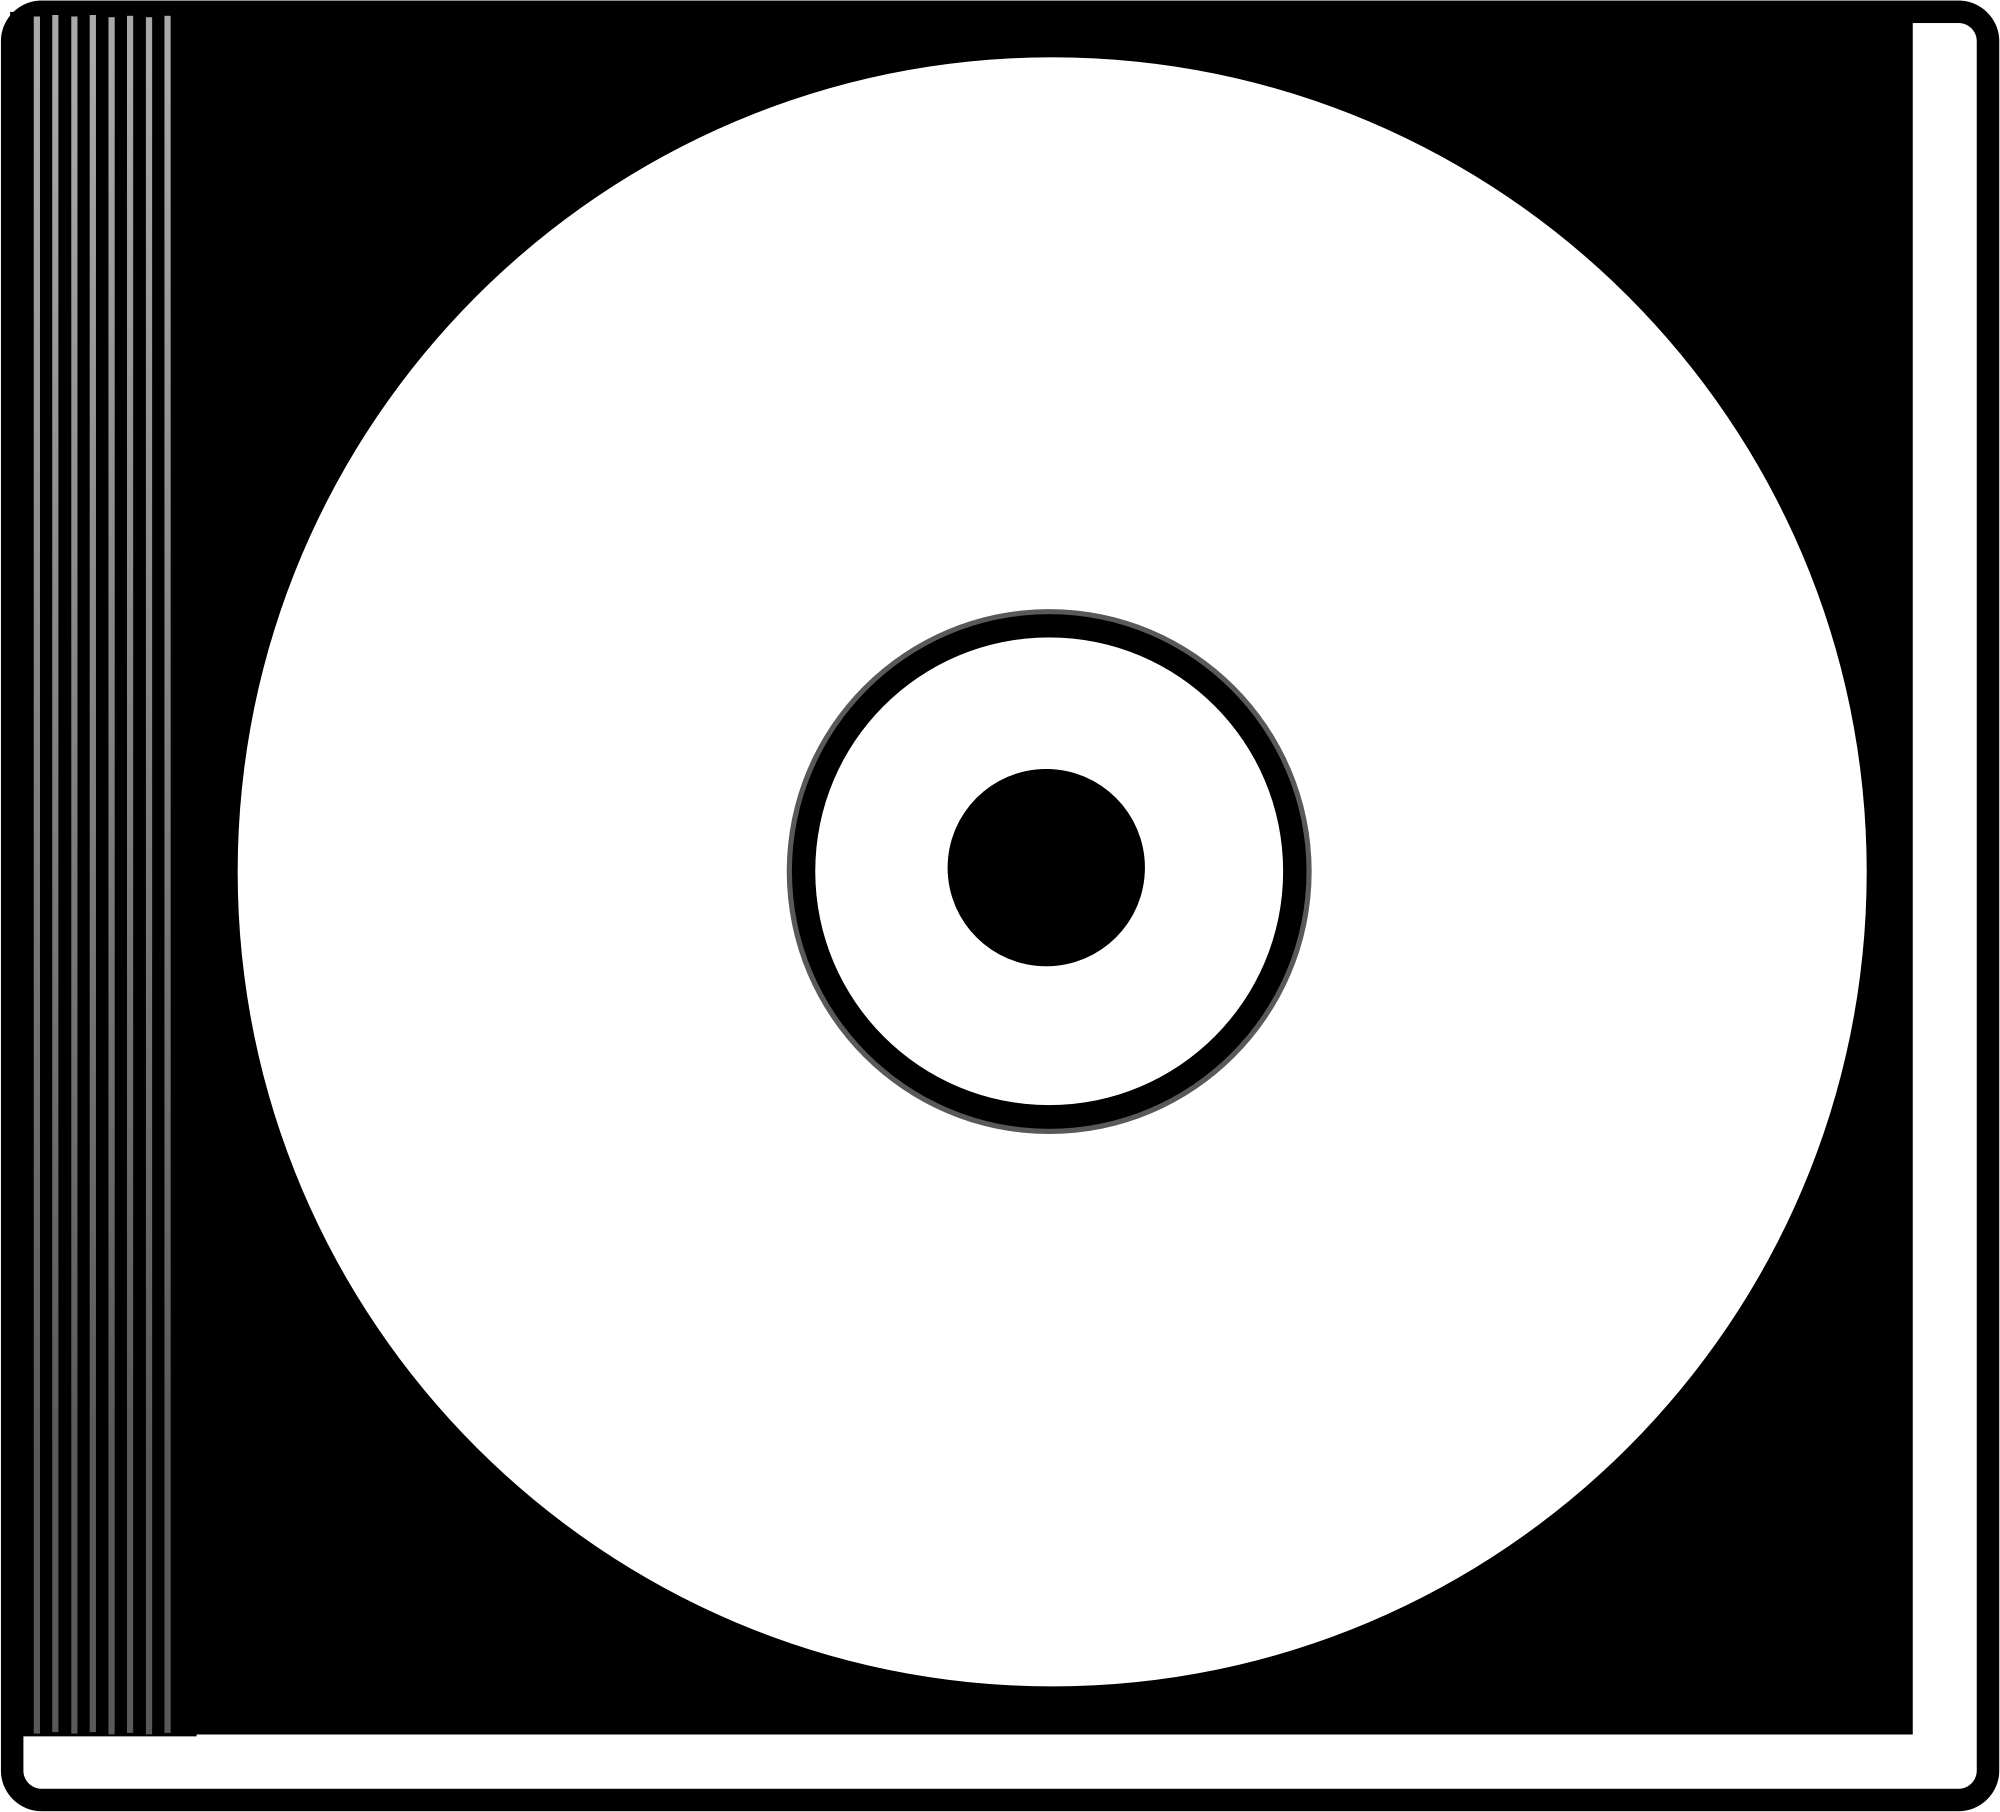 Free Dvd Clipart Black And White, Download Free Clip Art.